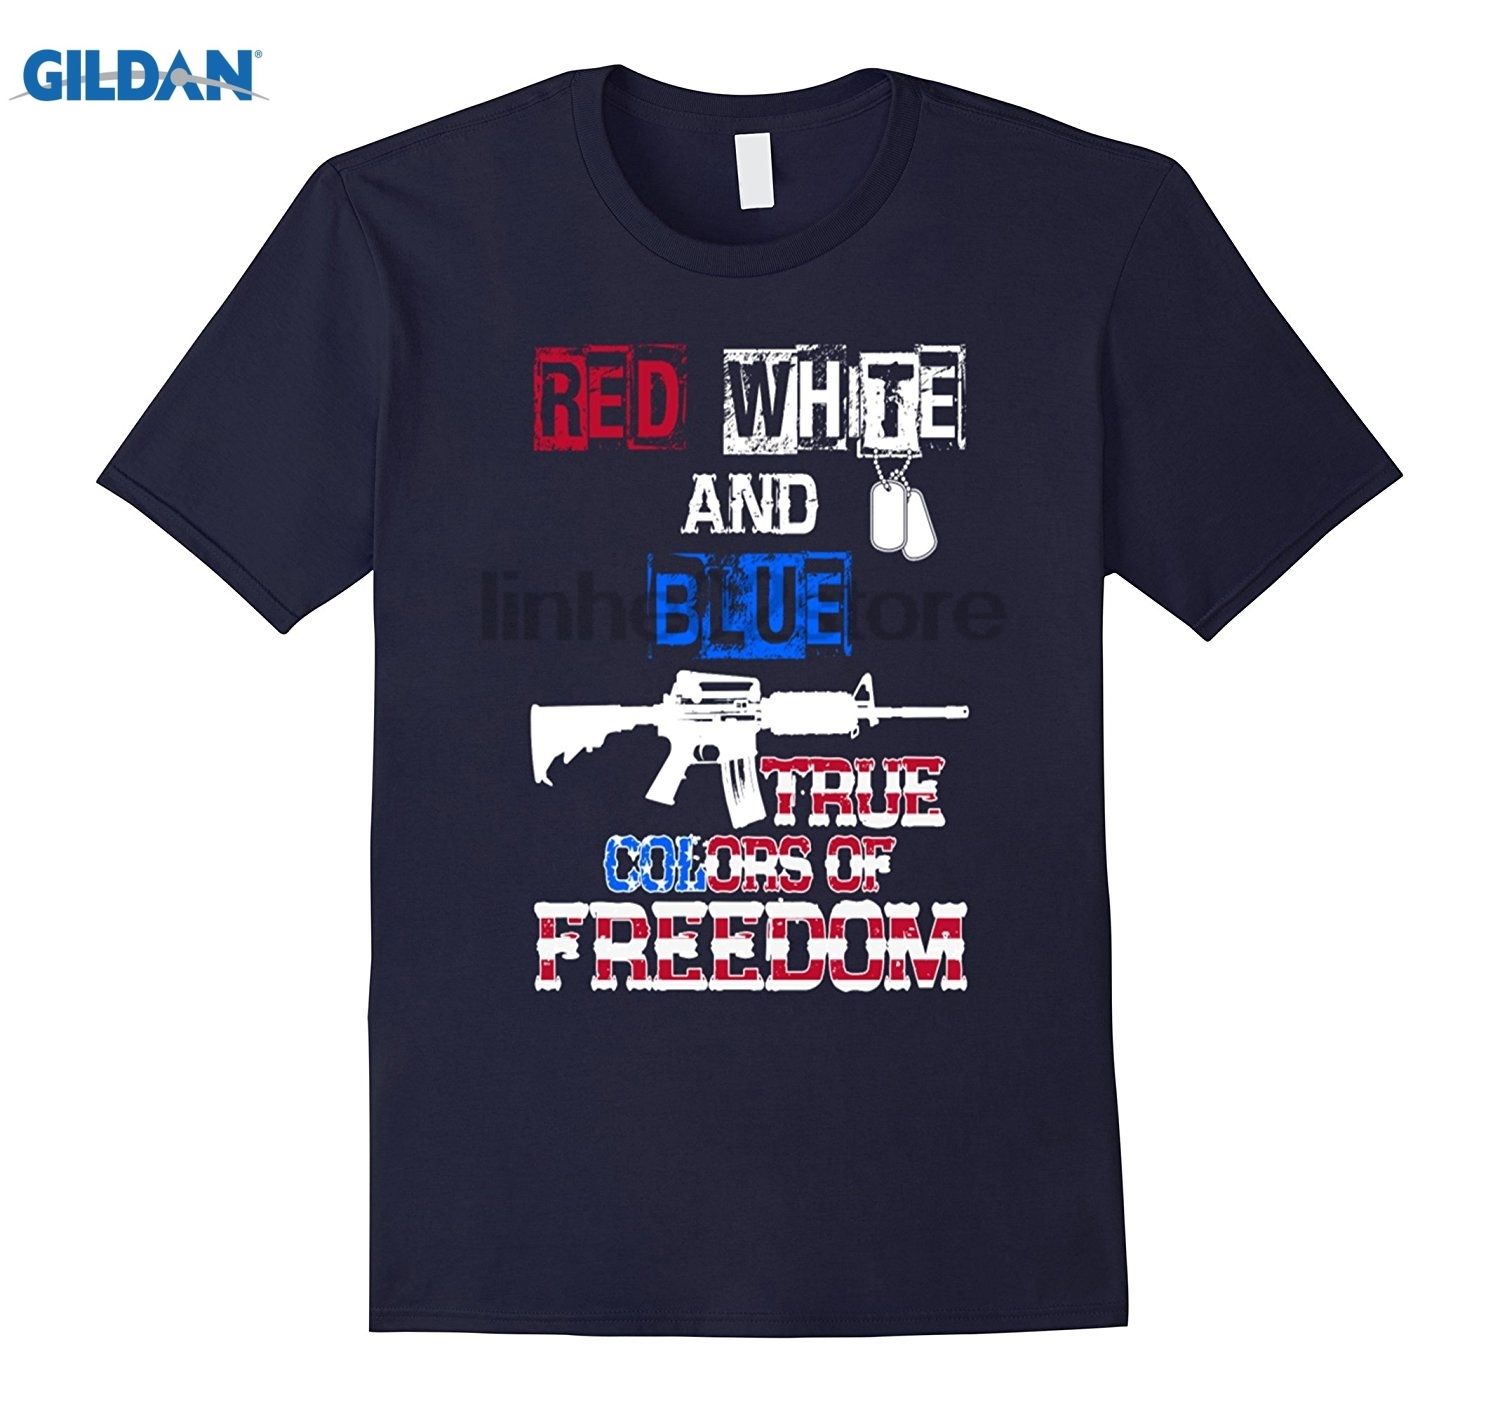 GILDAN Red White and Blue true colors of freedom- 4th of july t shi Hot Womens T-shirt Dress female T-shirt